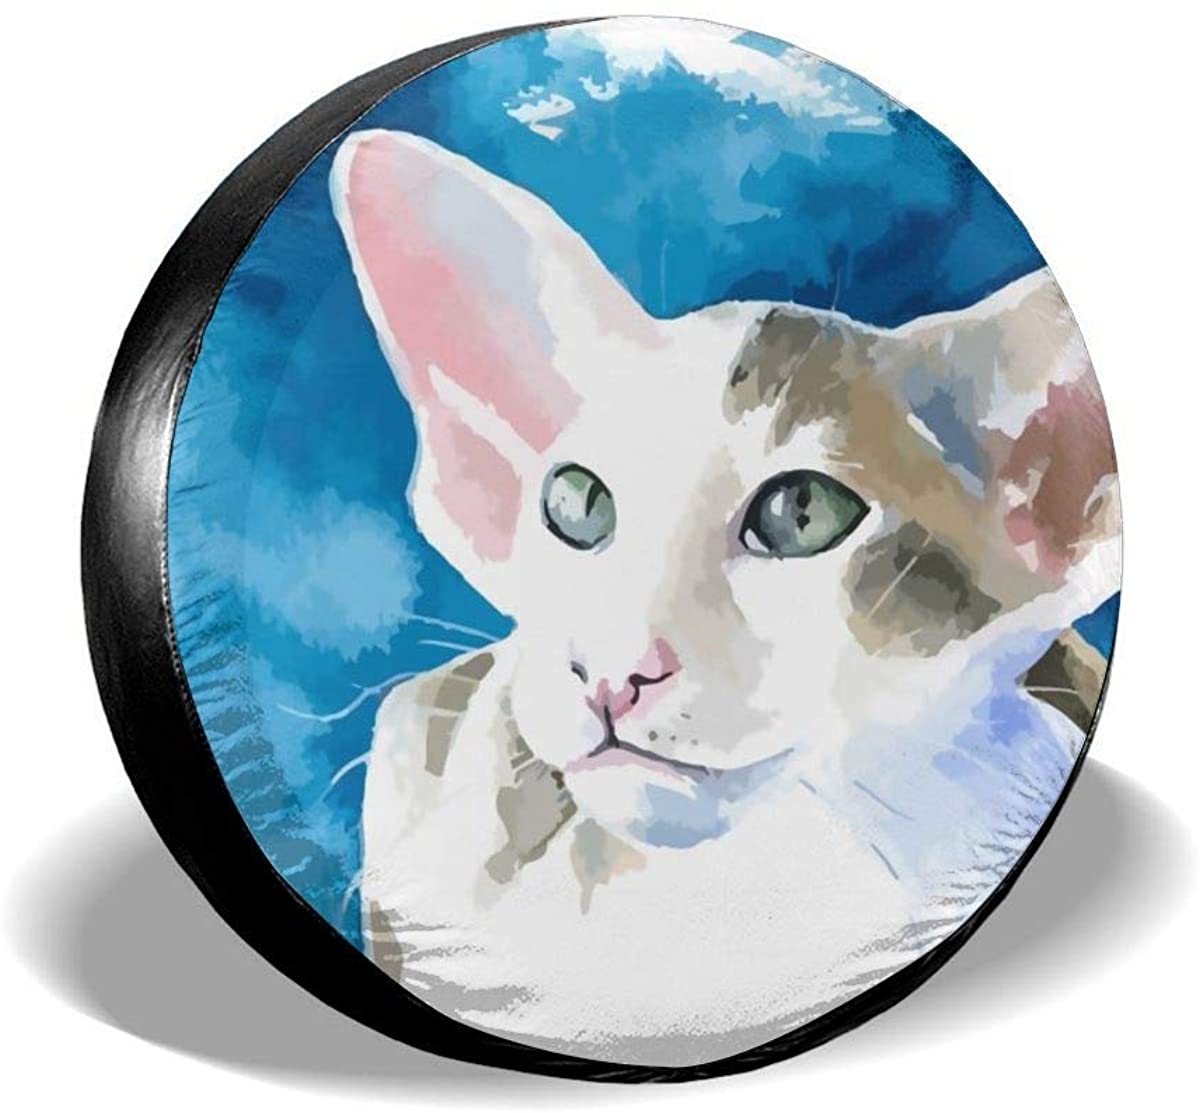 Bomini Spare Tires Covers Cat Wheel Waterproof SUV Campers Travel Rv Trailer Accessories 14 15 16 17inch